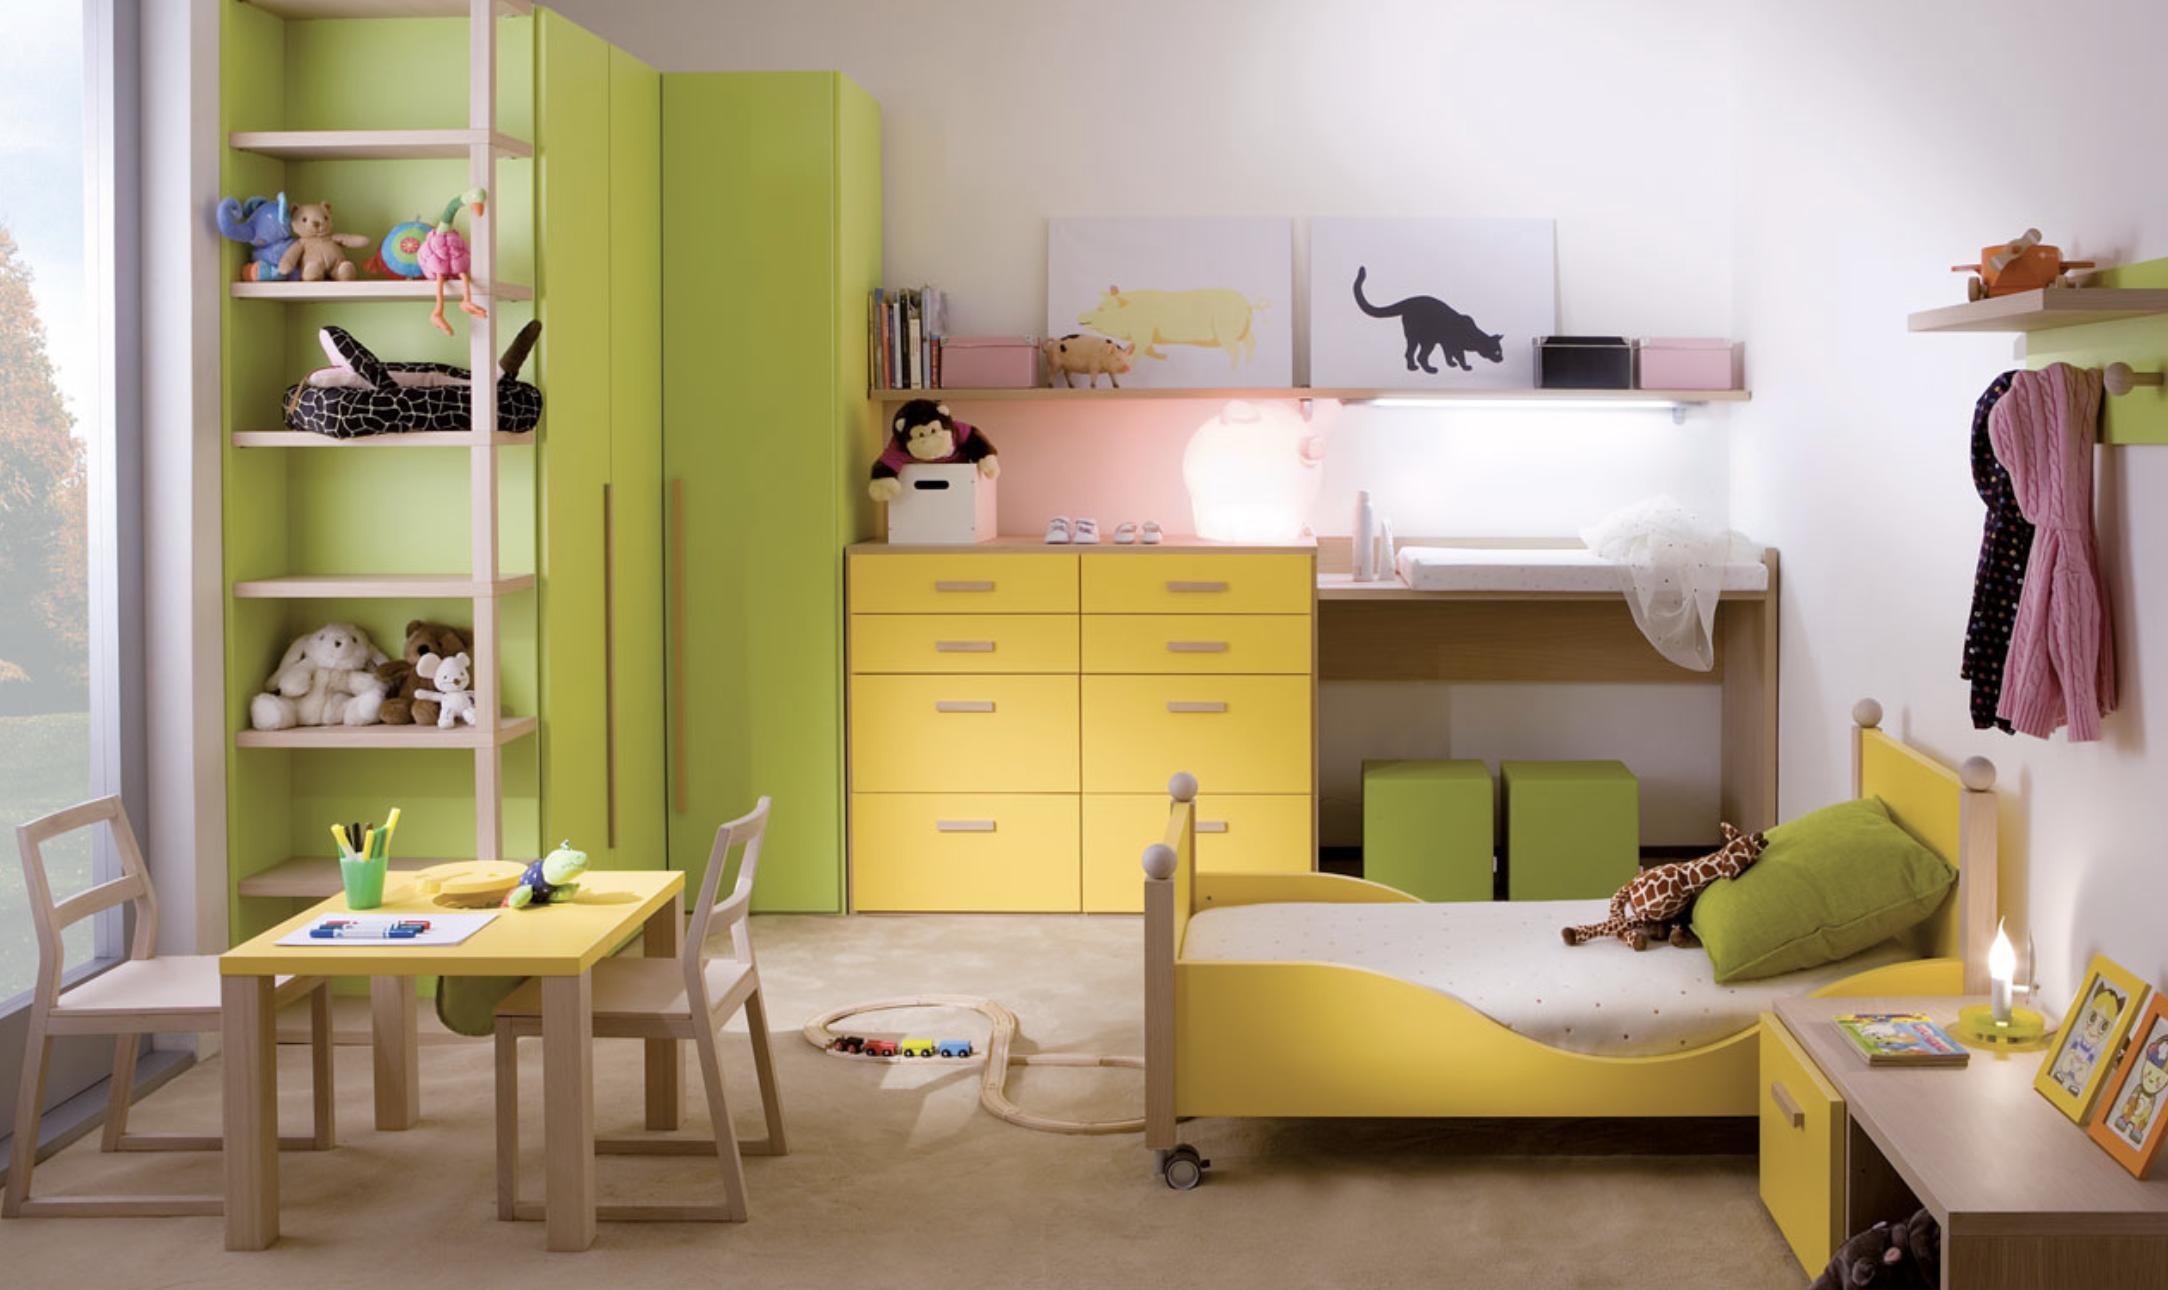 Top of the range, Collezione 7004 for children from Italy's Dearkids.it